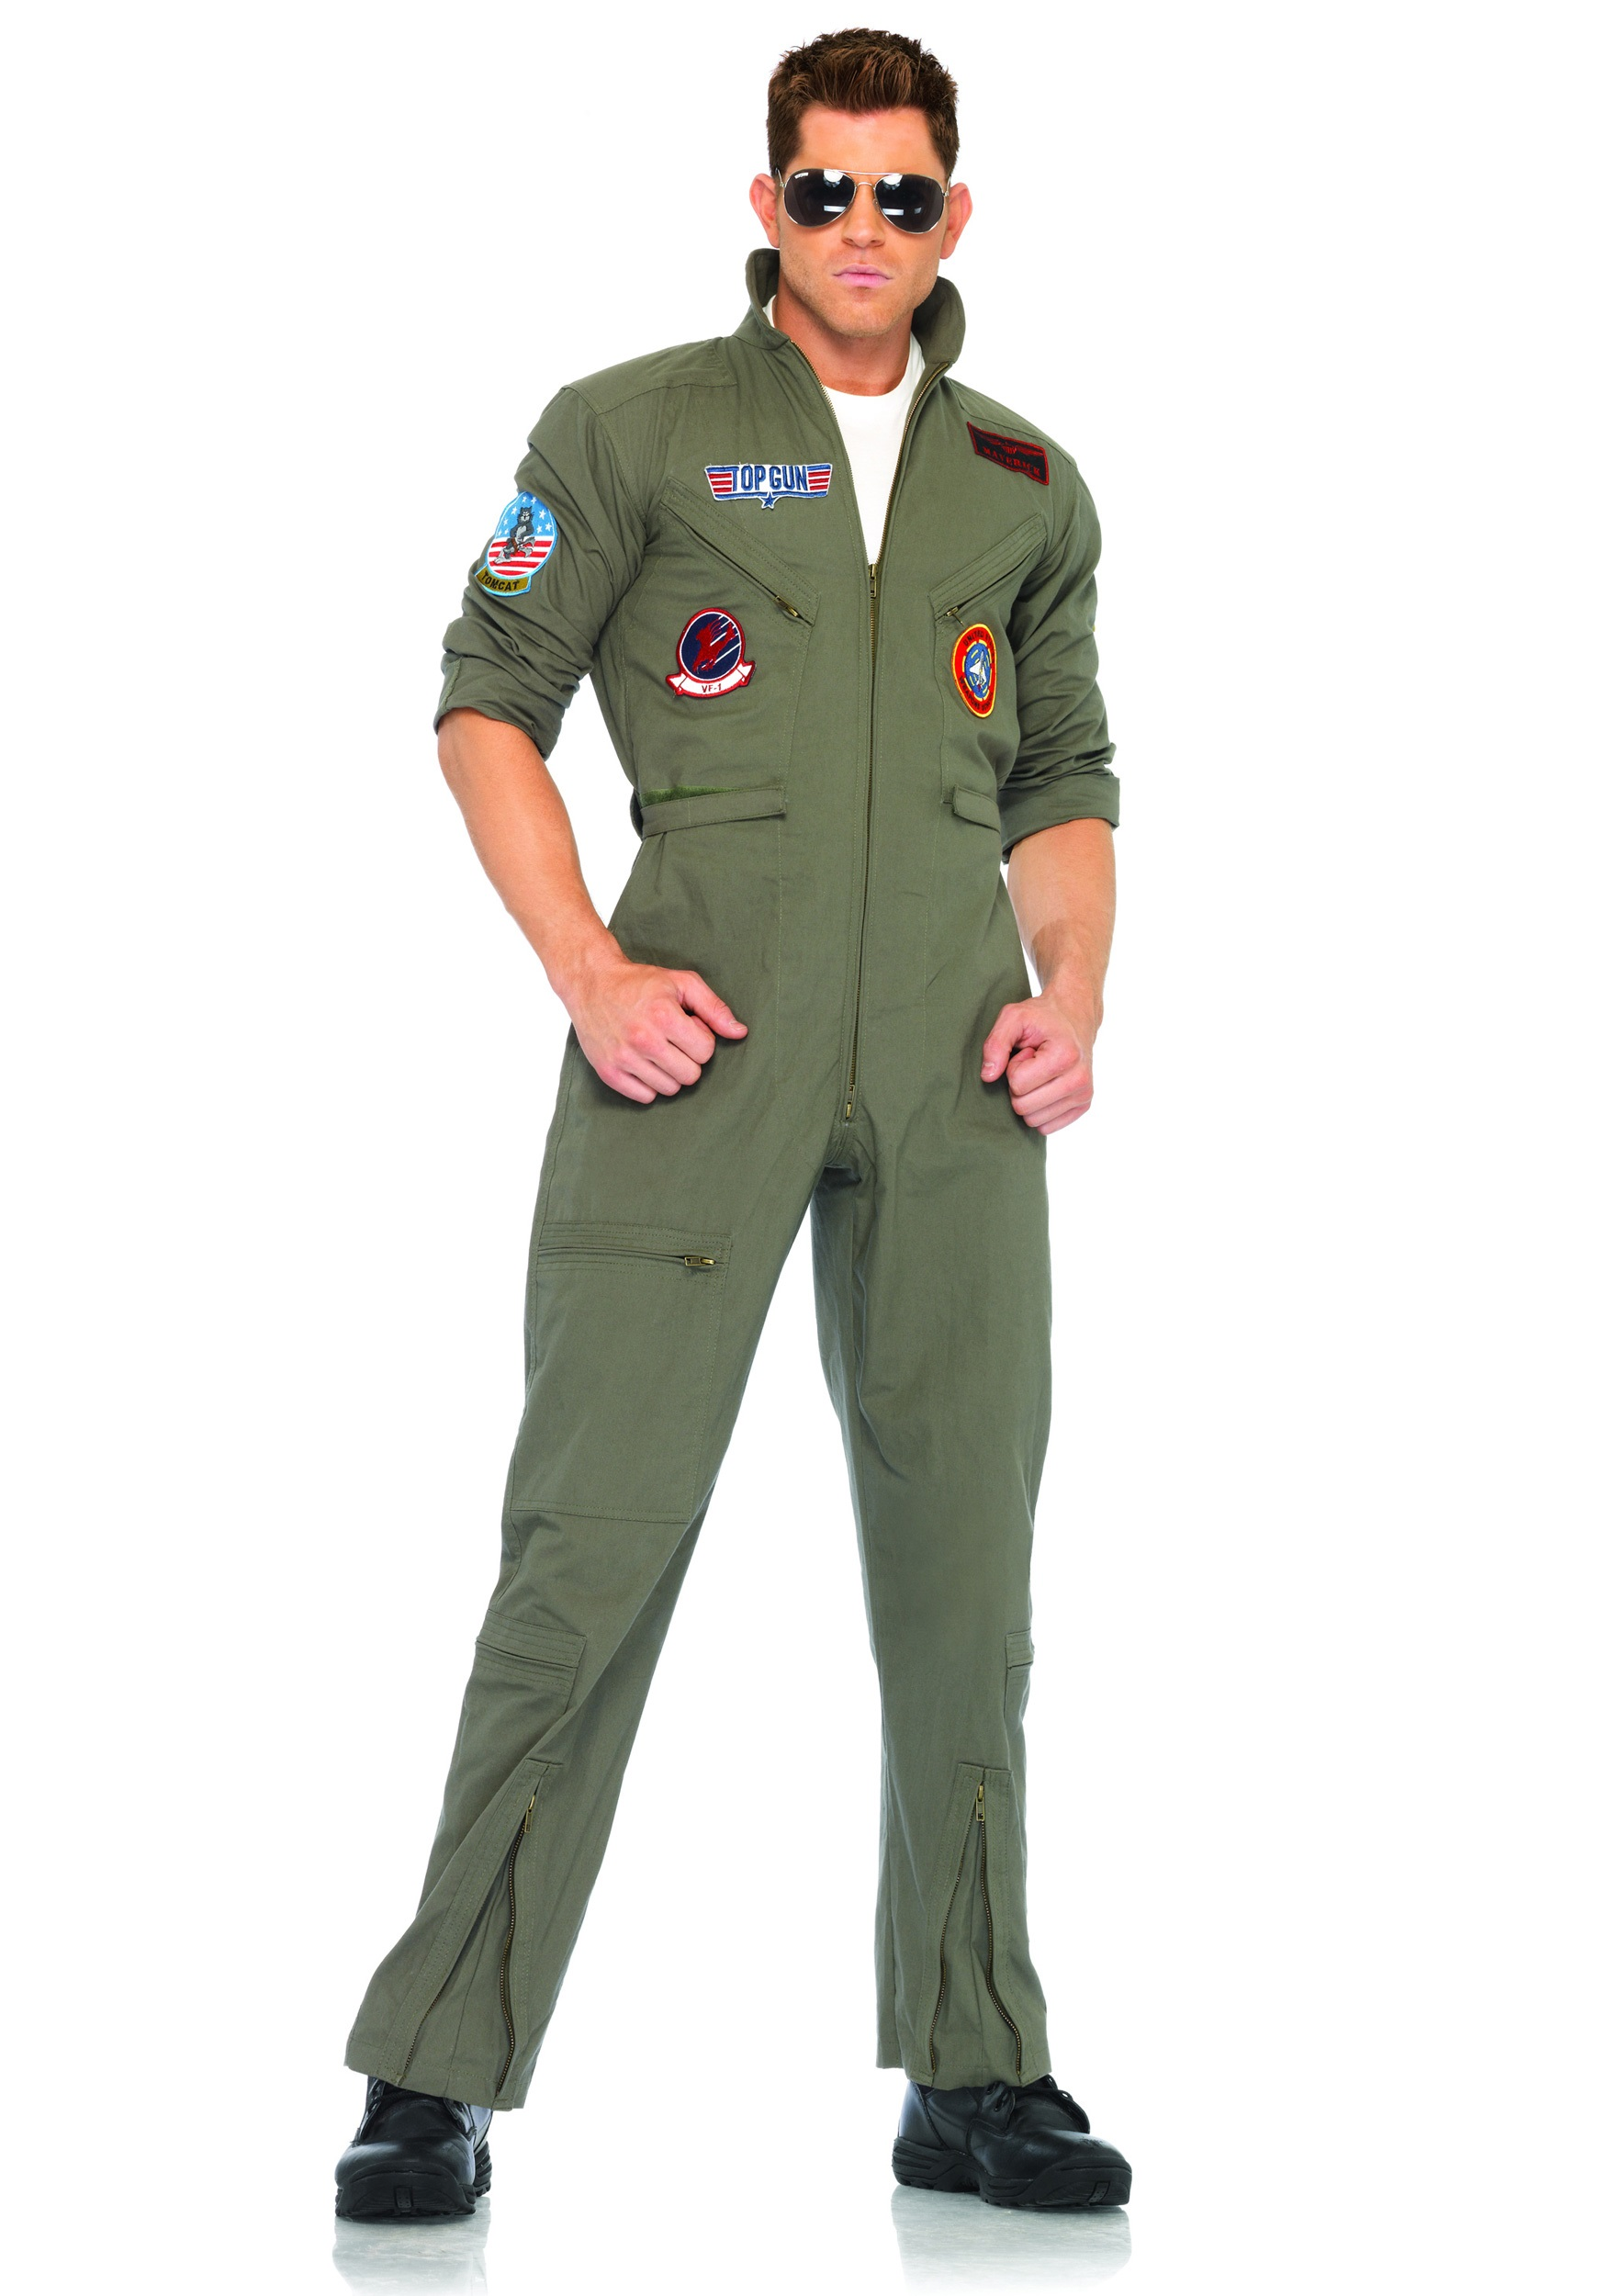 Men's Top Gun Flight Suit